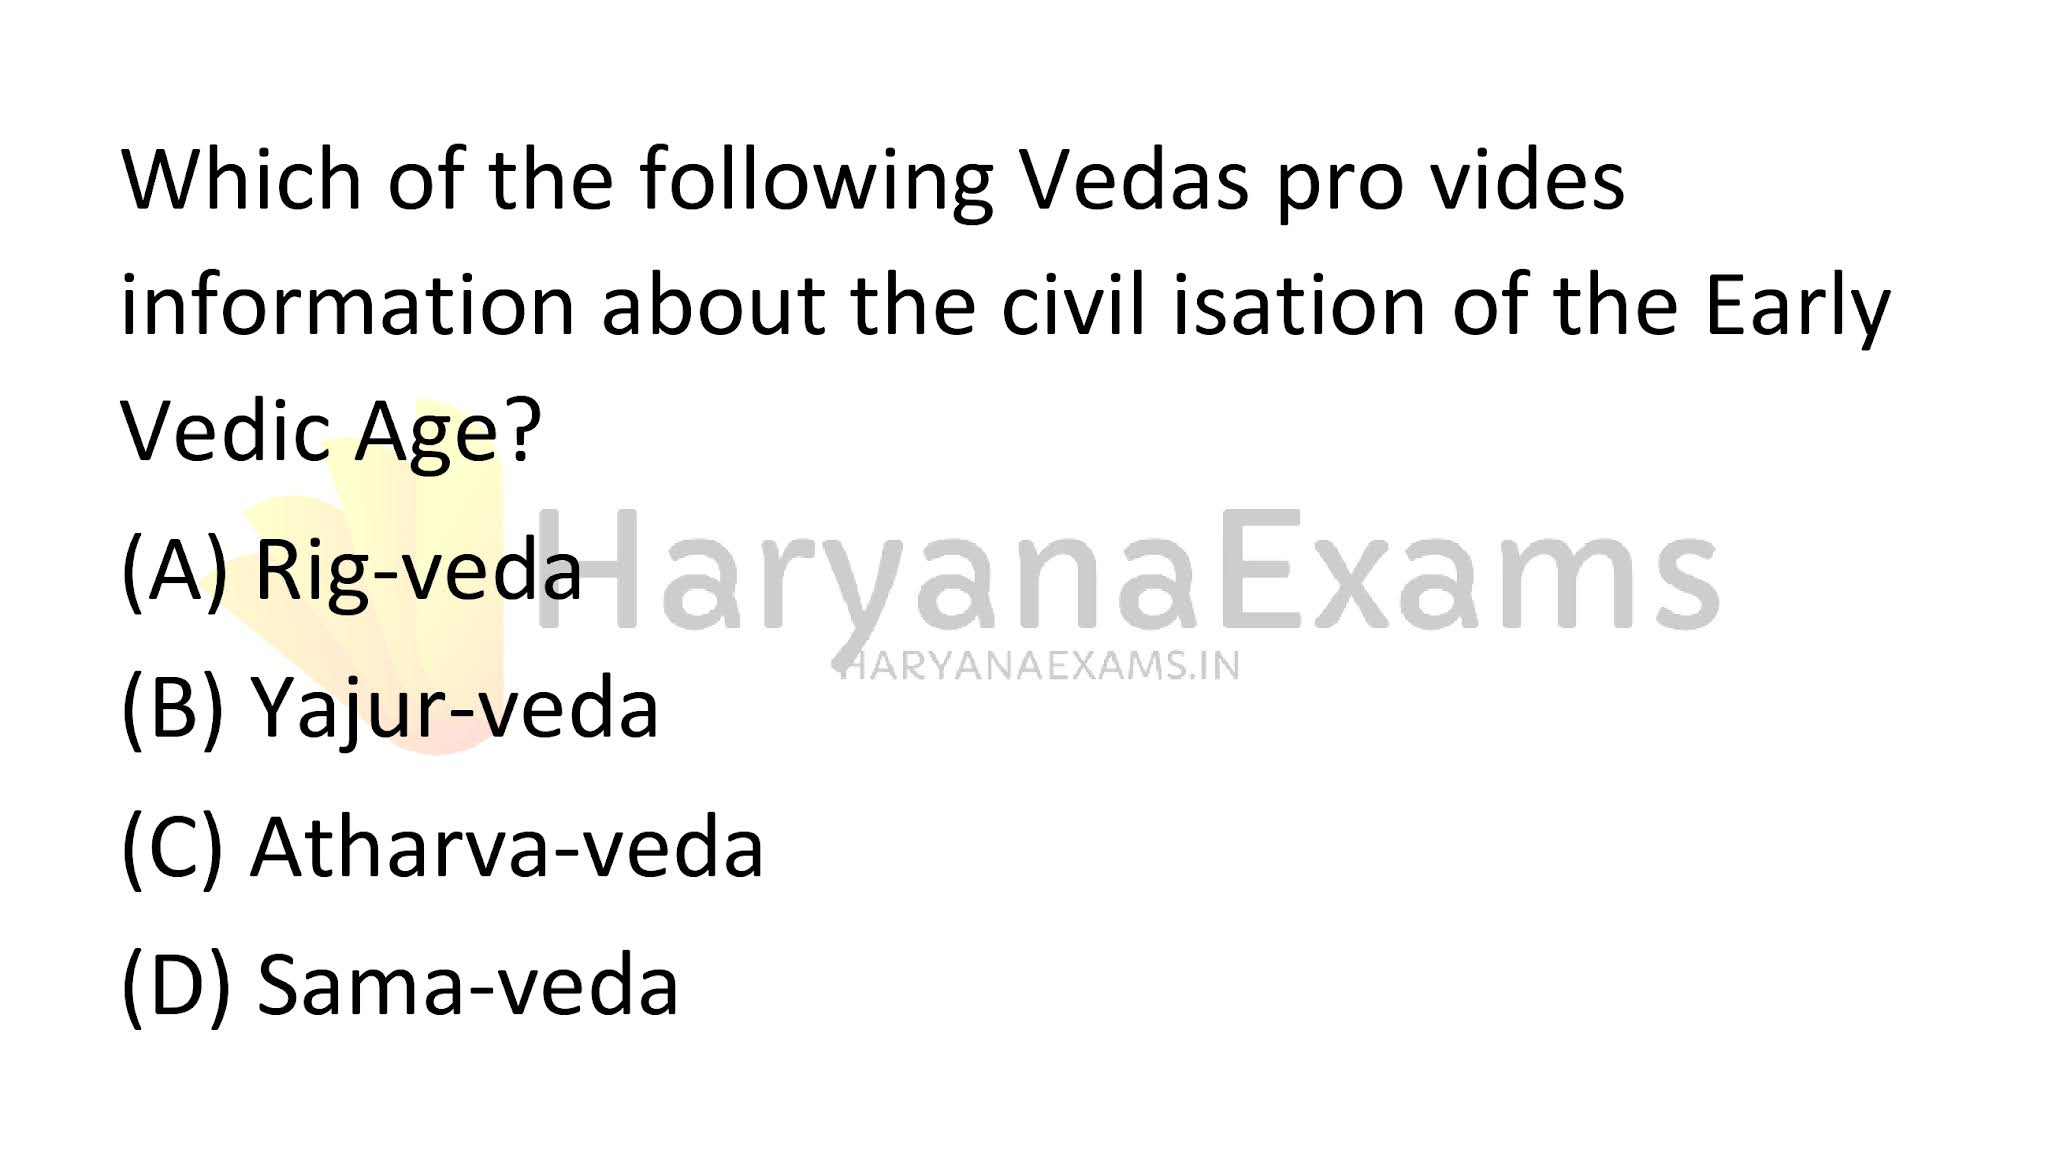 Which of the following Vedas provides information about the civilisation of the Early Vedic Age? (A) Rig-veda  (B) Yajur-veda  (C) Atharva-veda  (D) Sama-veda